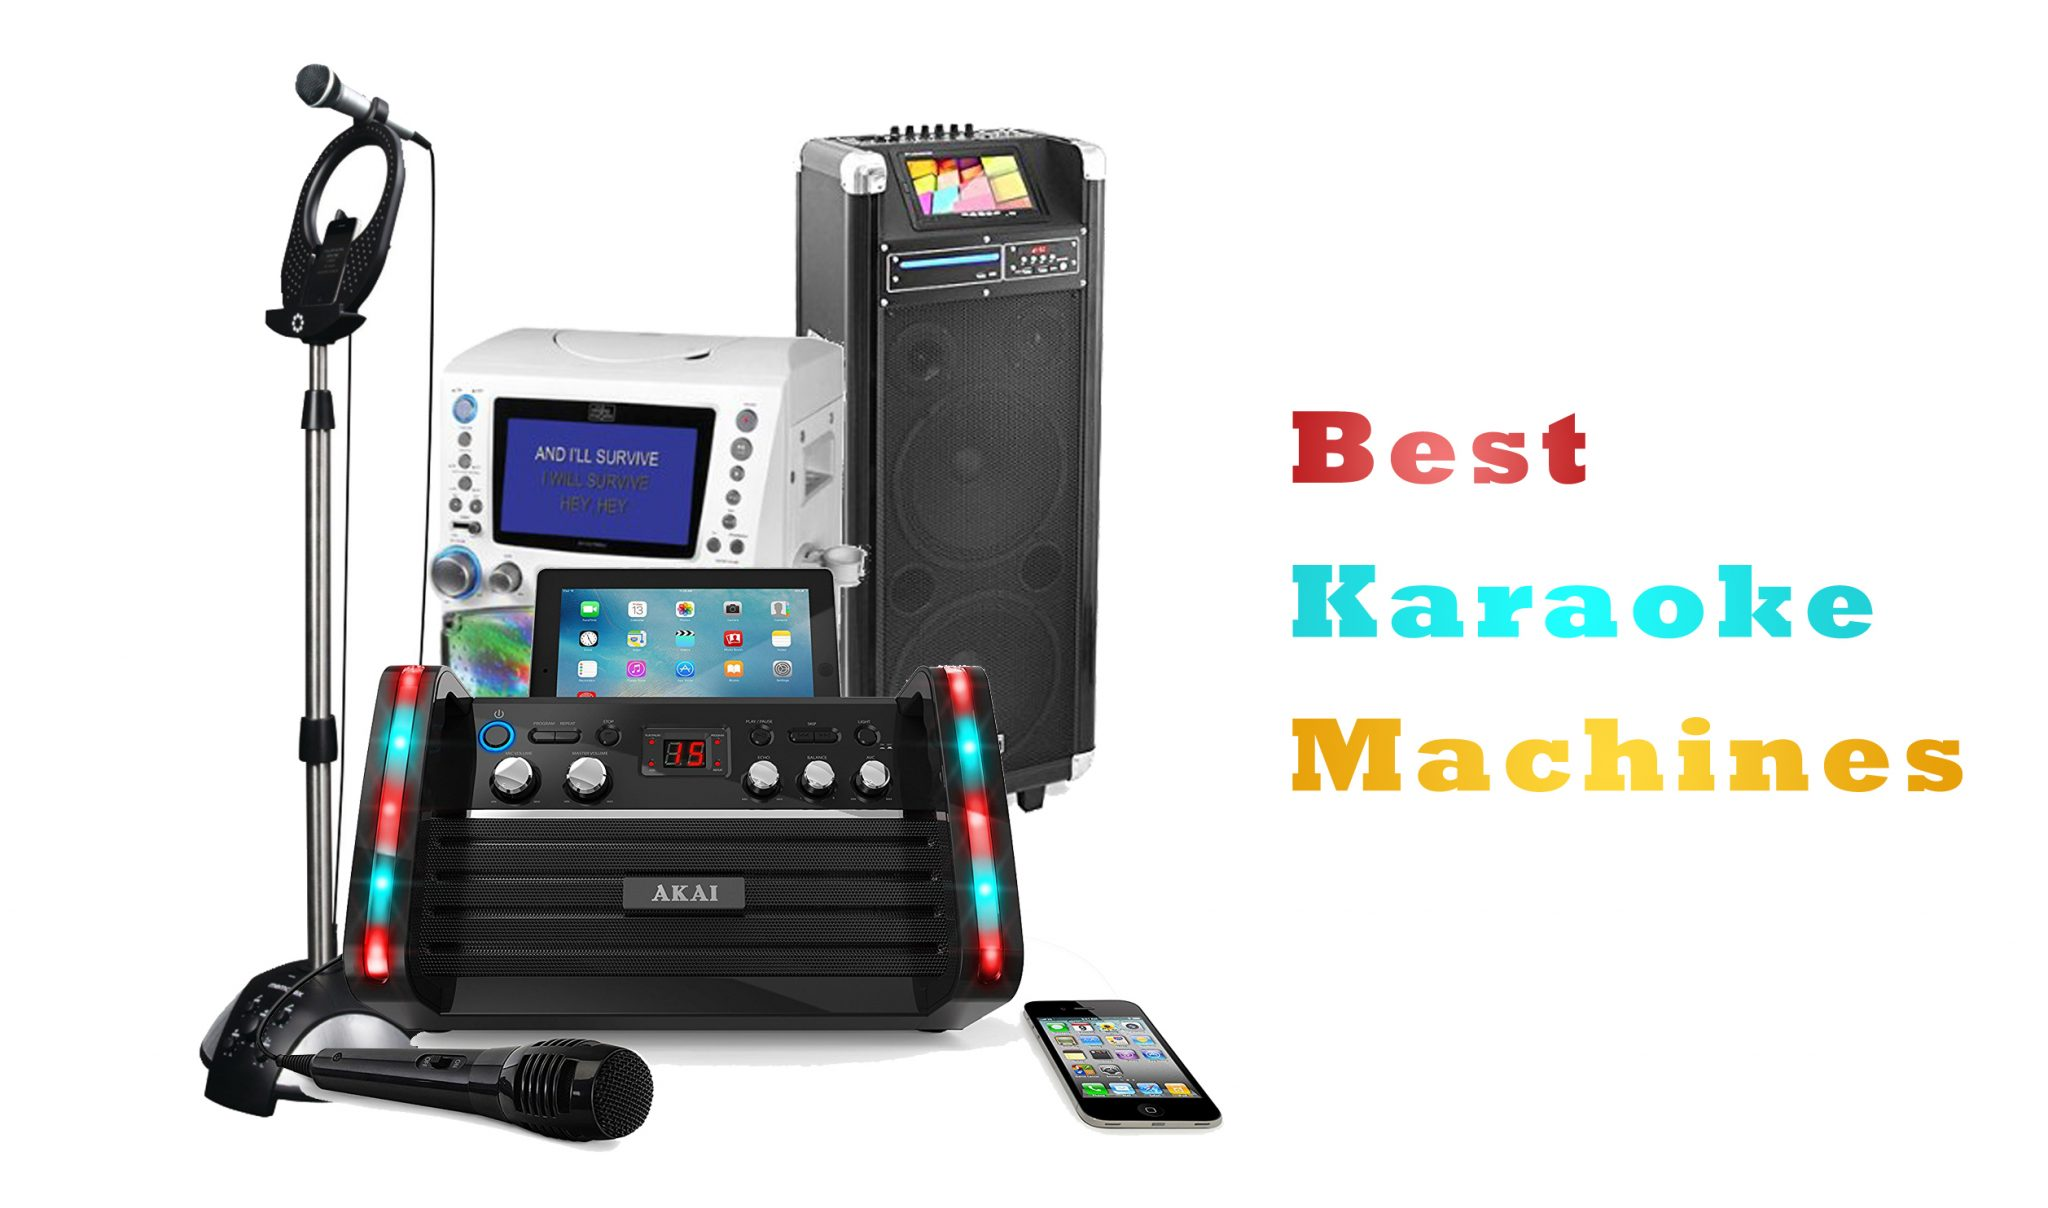 What Is The Best Karaoke Machine To Buy